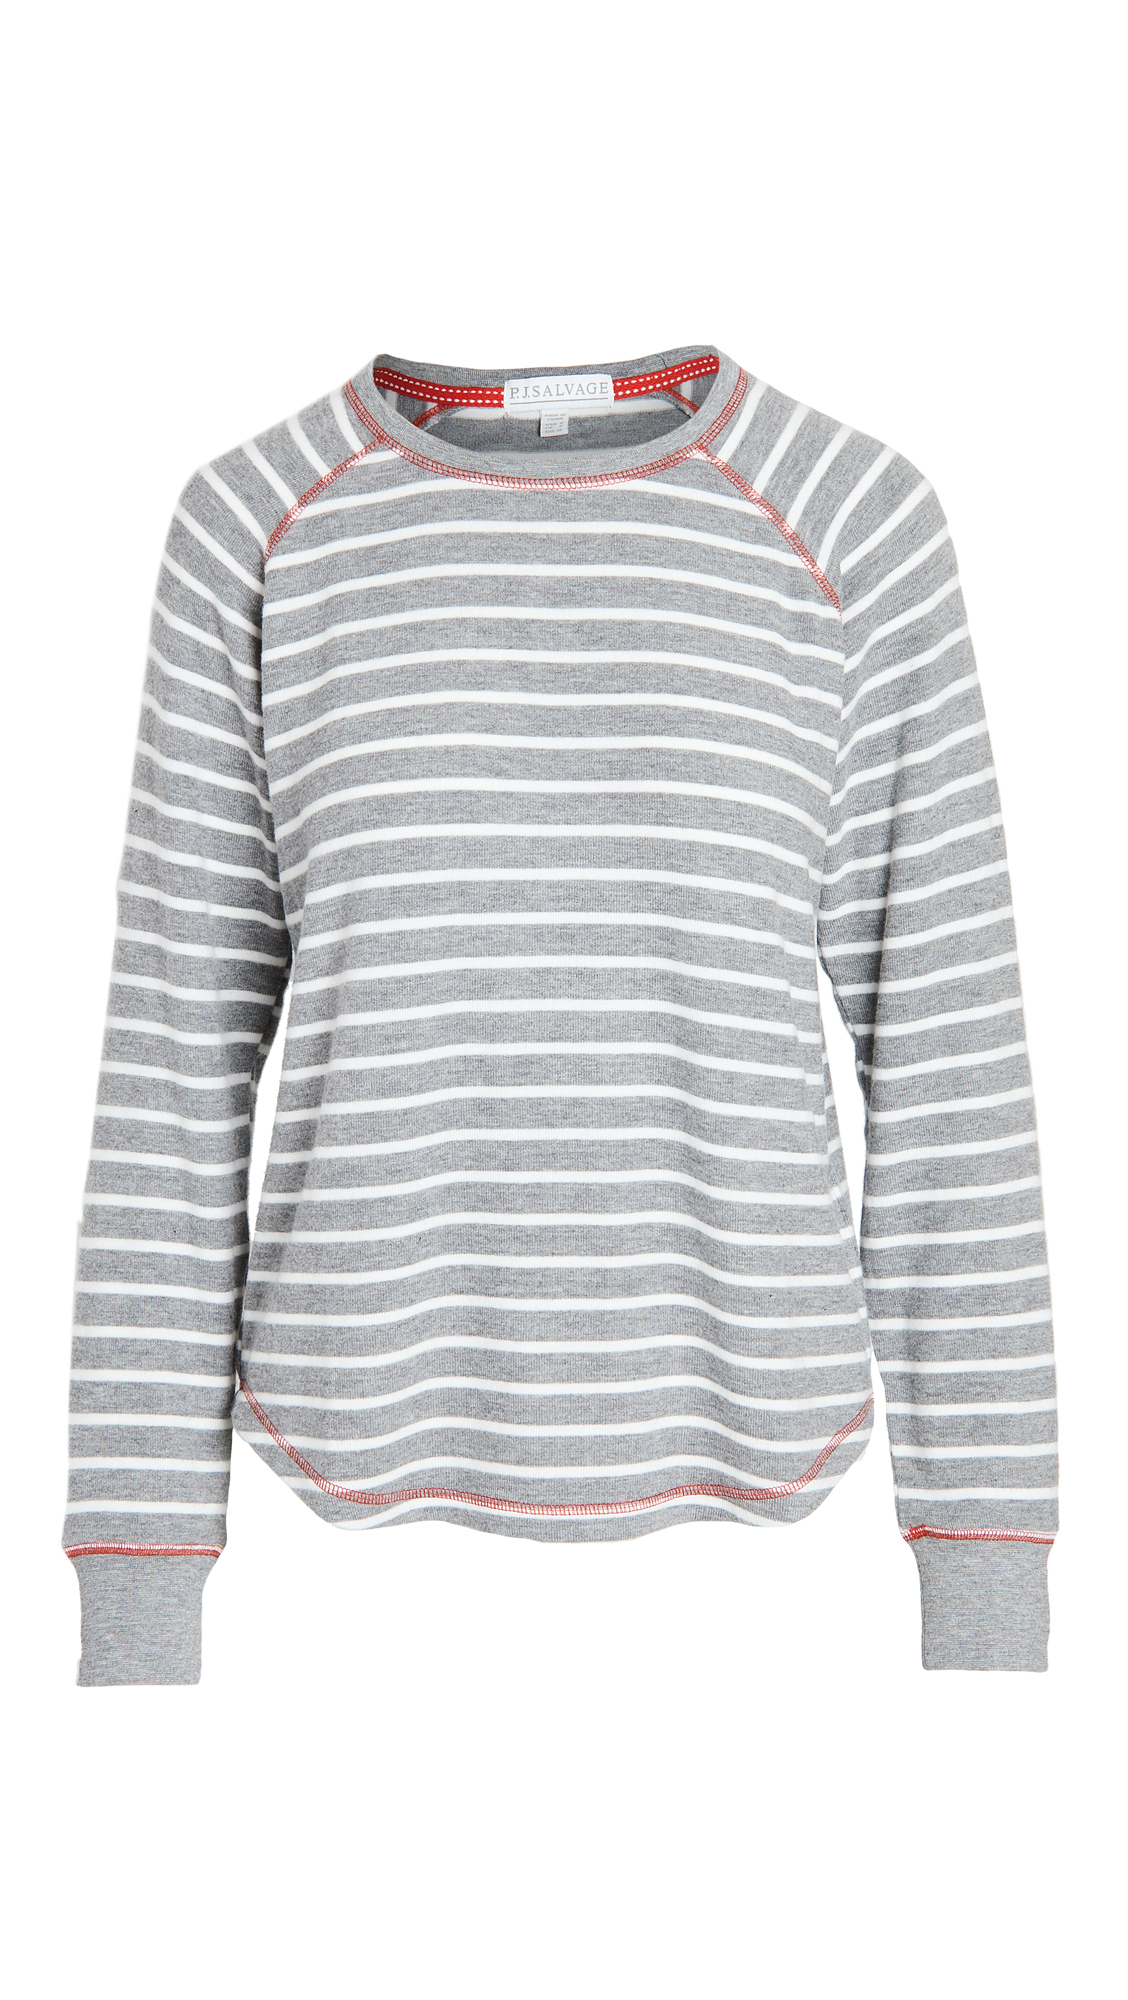 PJ Salvage Joyful Long Sleeve Top